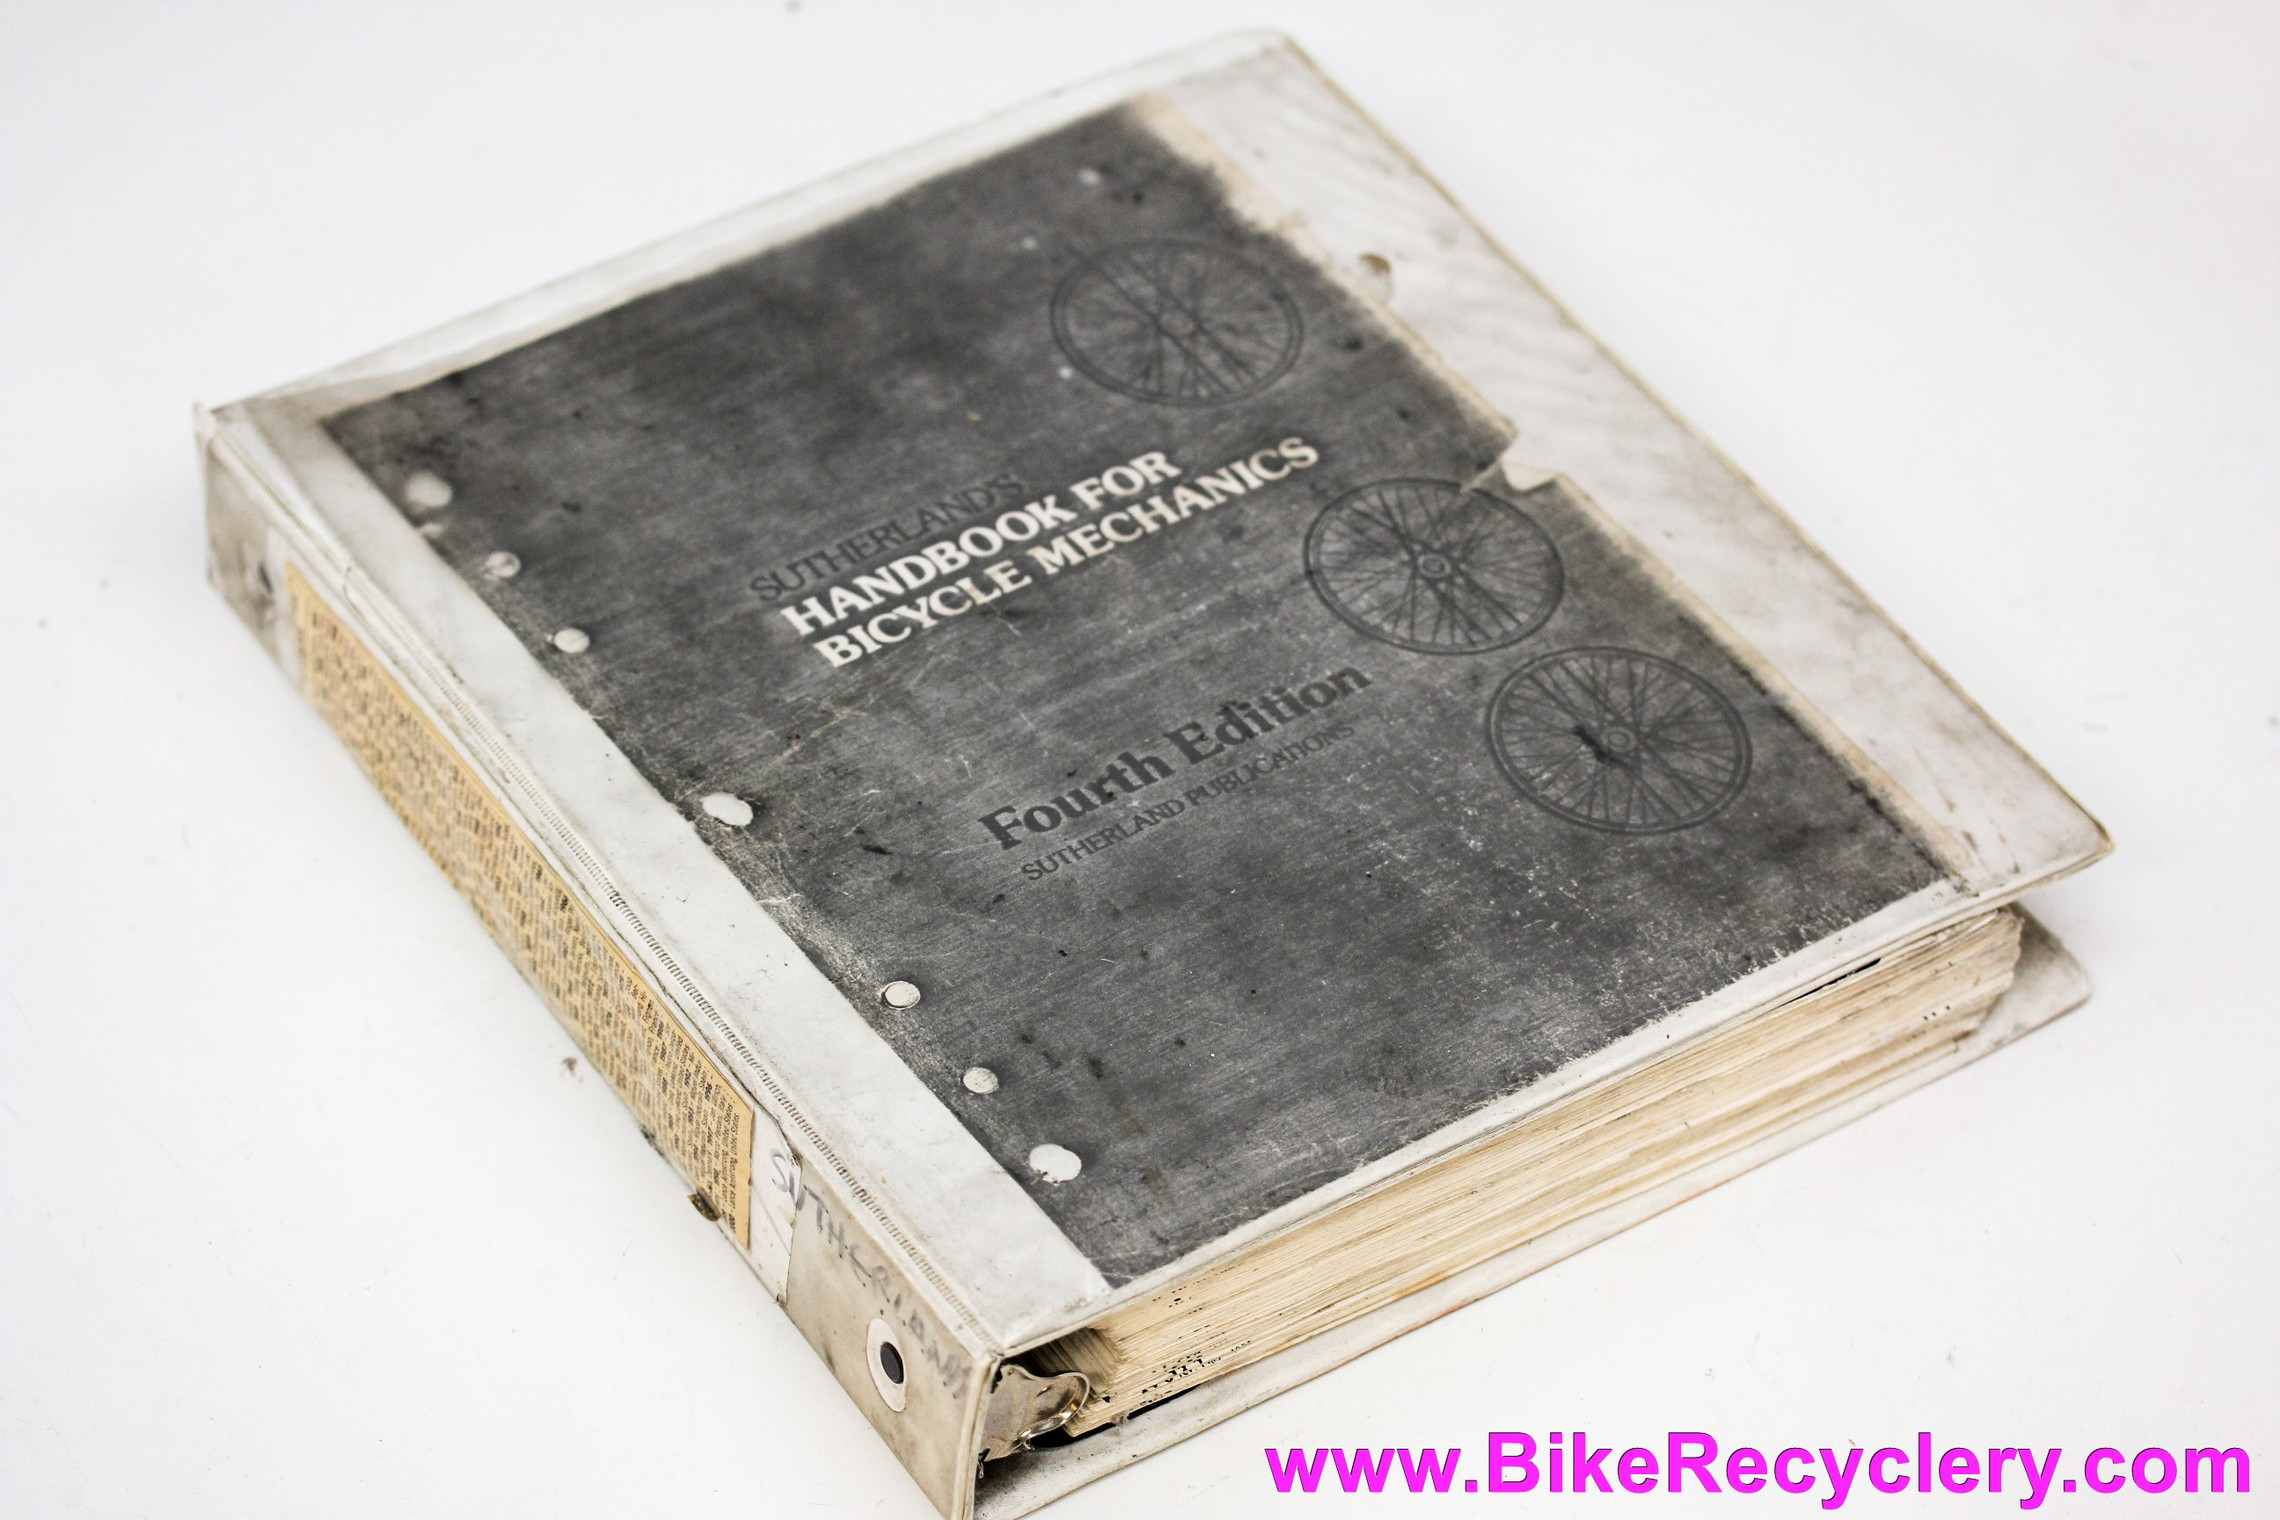 Sutherland's Handbook For Bicycle Mechanics: 4th Edition Vintage 1985 Red (photocopied)